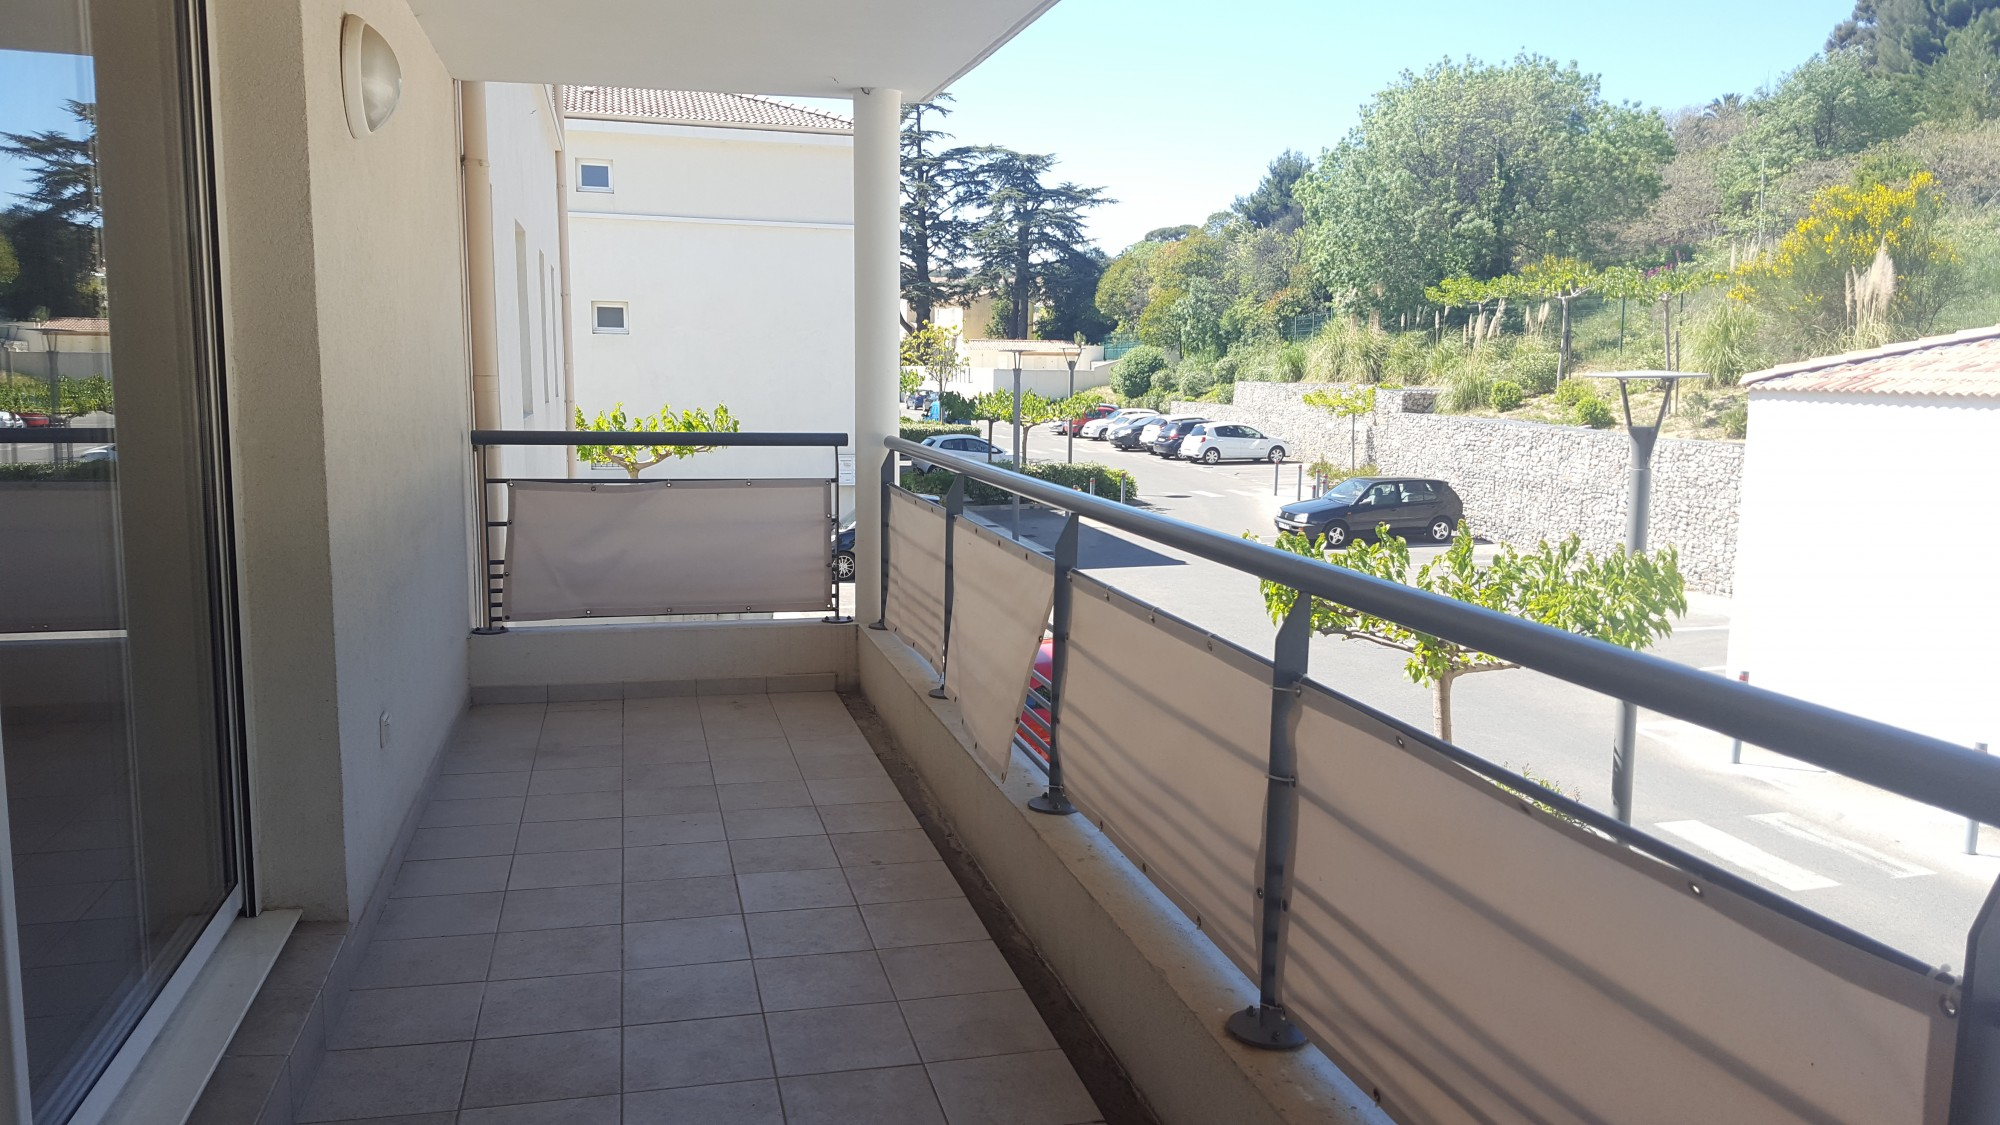 Deja loue appartement t2 de 4050m2 terrasse de 13m2 for T2 marseille terrasse